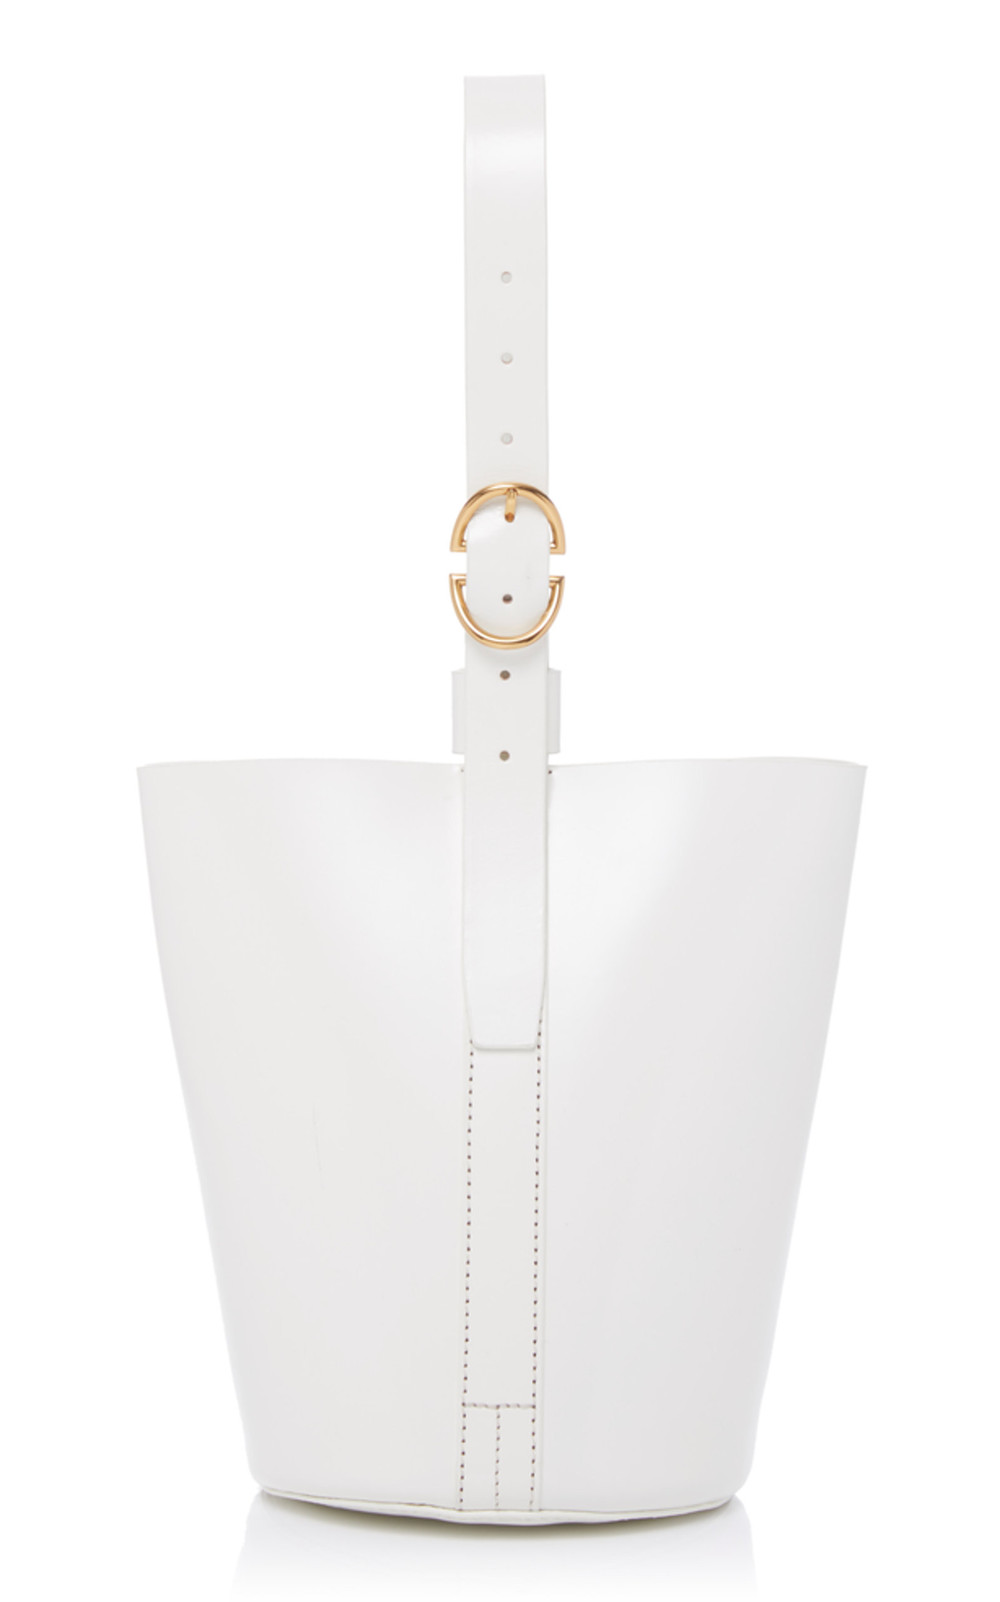 Trademark Small Classic Leather Bucket Bag in white